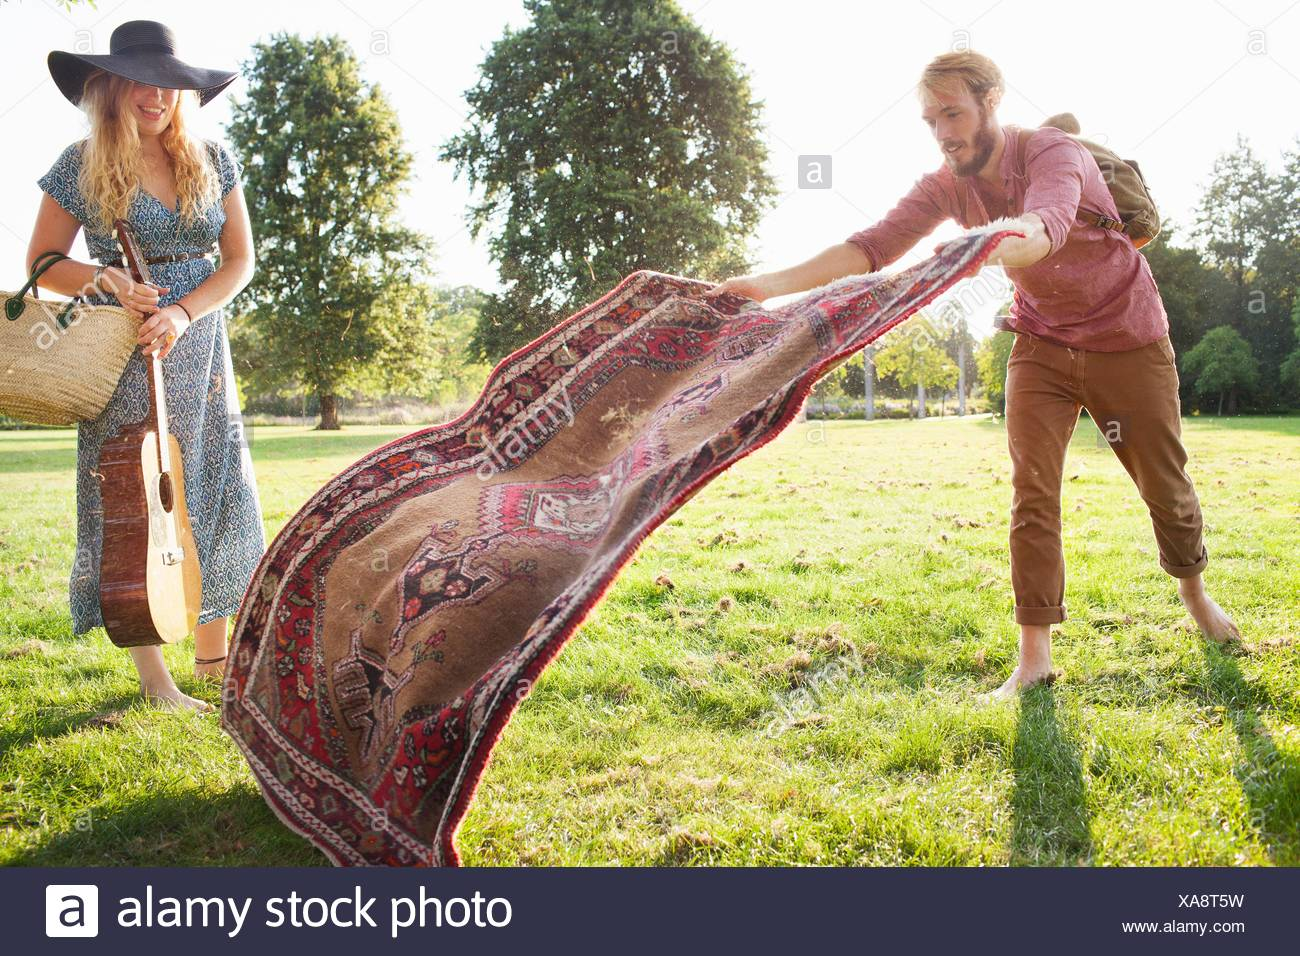 Romantic young couple spreading rug for picnic in park - Stock Image